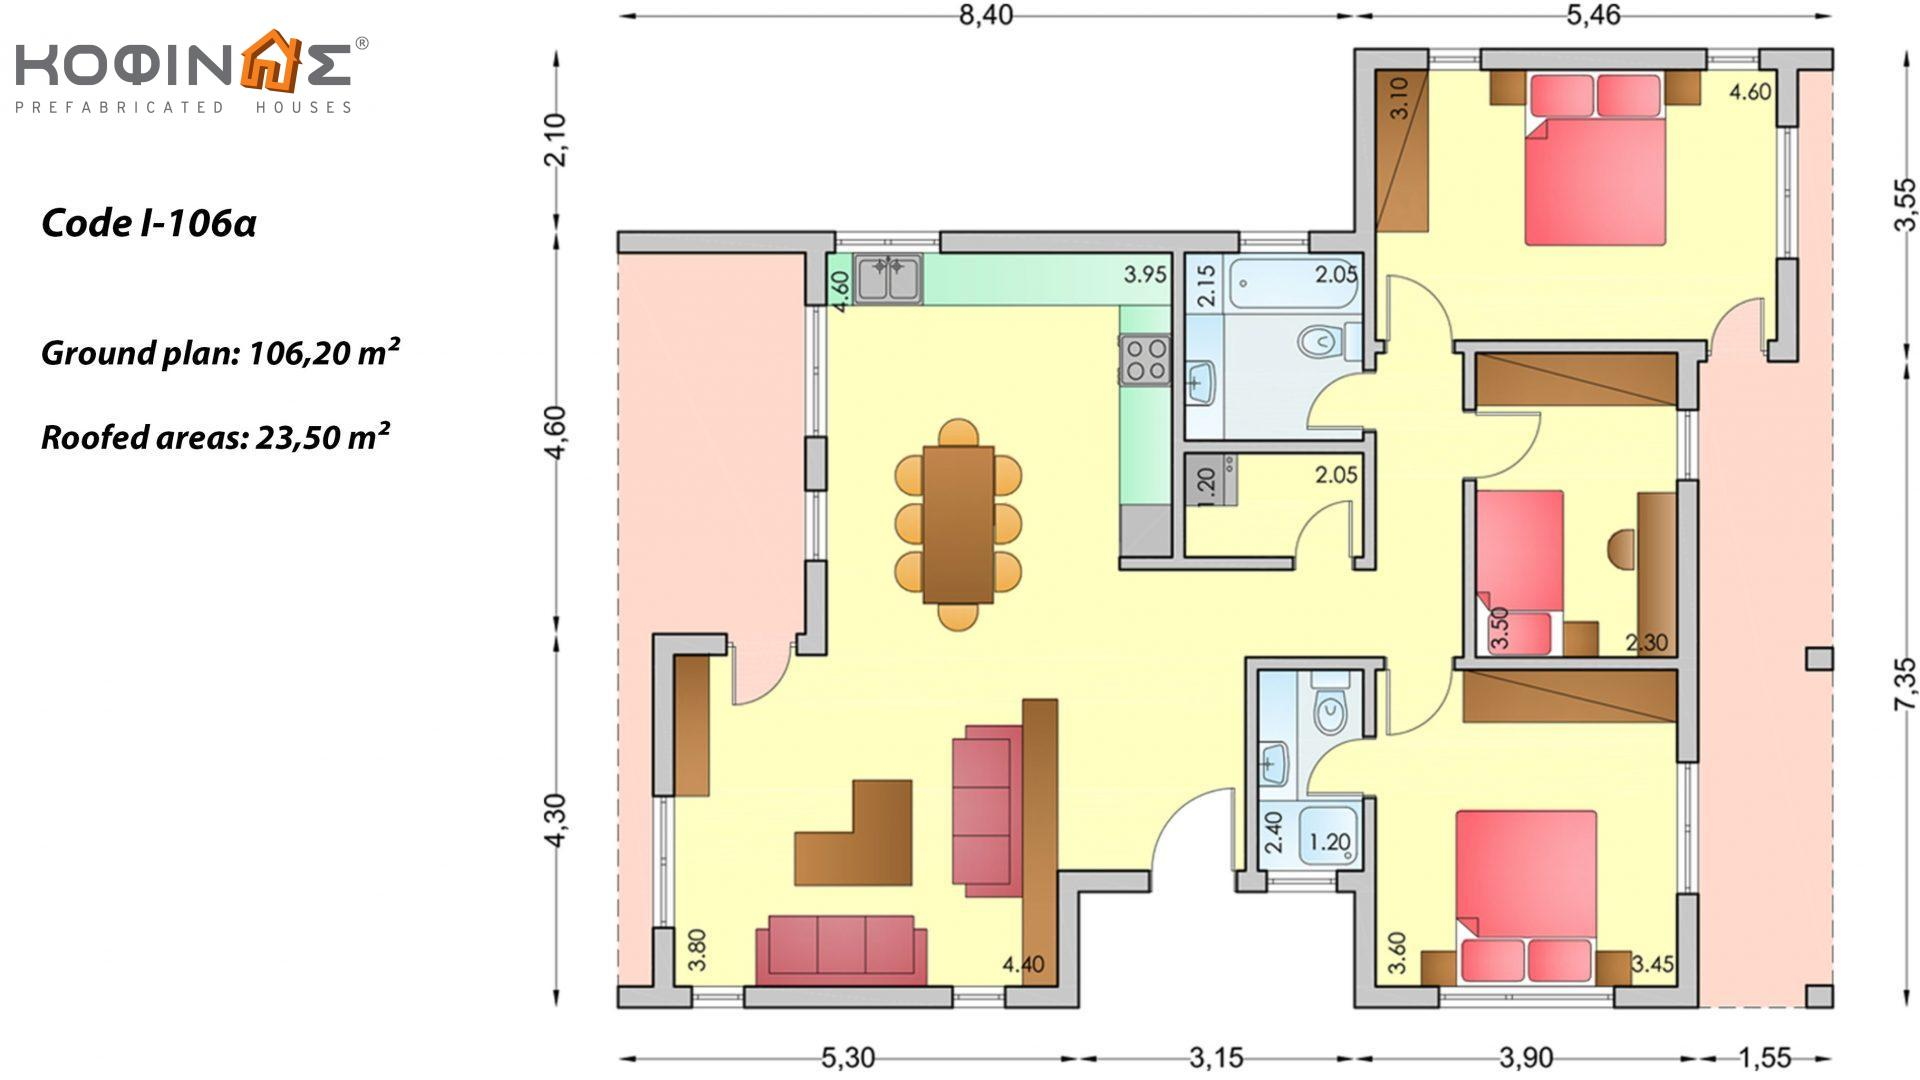 1-story house I-106a, total surface of 106,20 m², roofed areas 23,50 m²